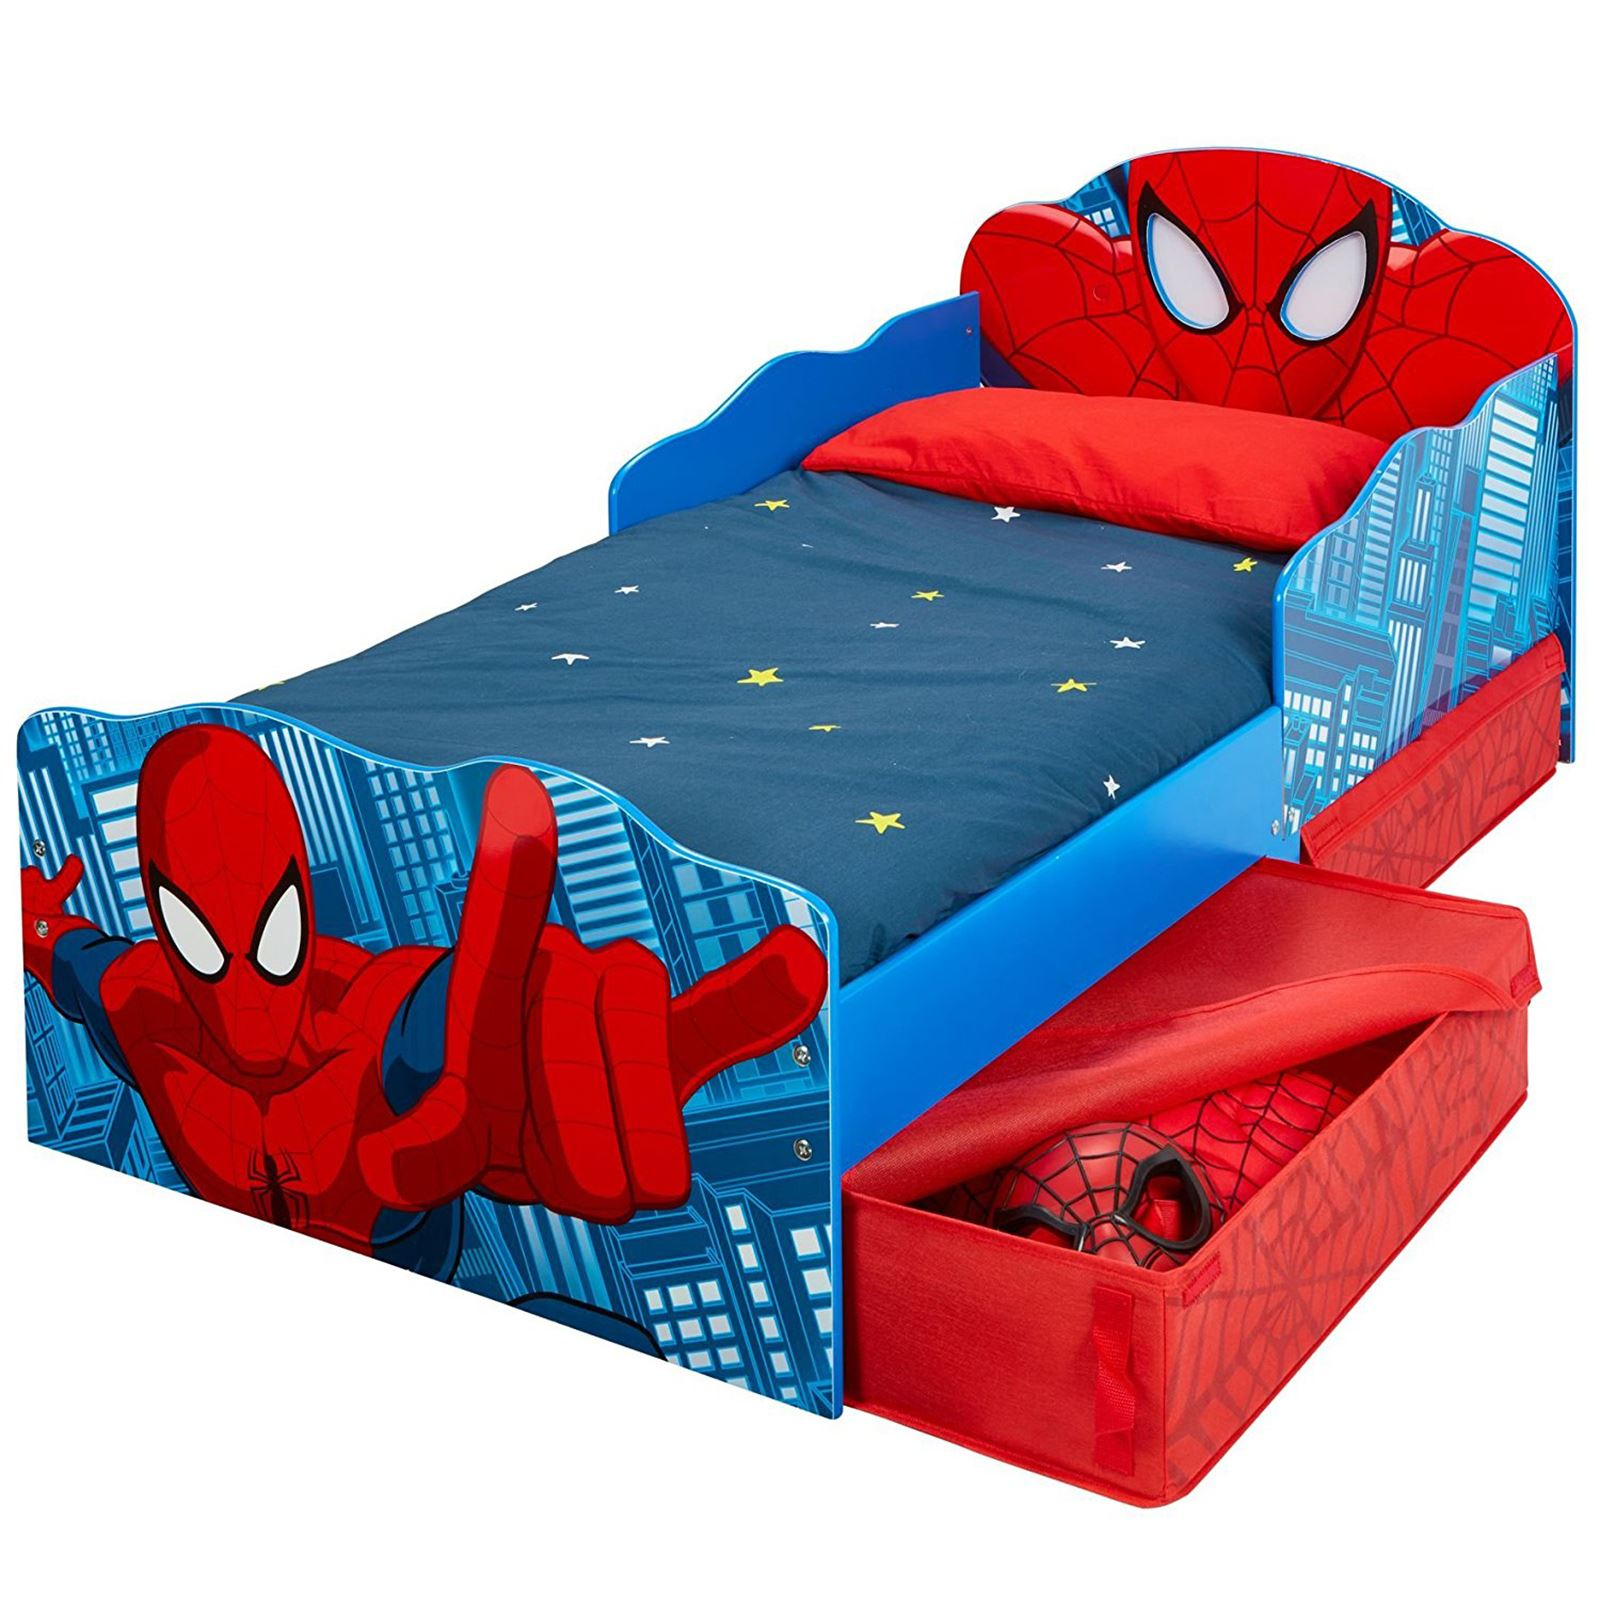 DELUXE FOAM MATTRESS OFFICIAL SPIDERMAN TODDLER BED WITH STORAGE LIGHT UP EYES